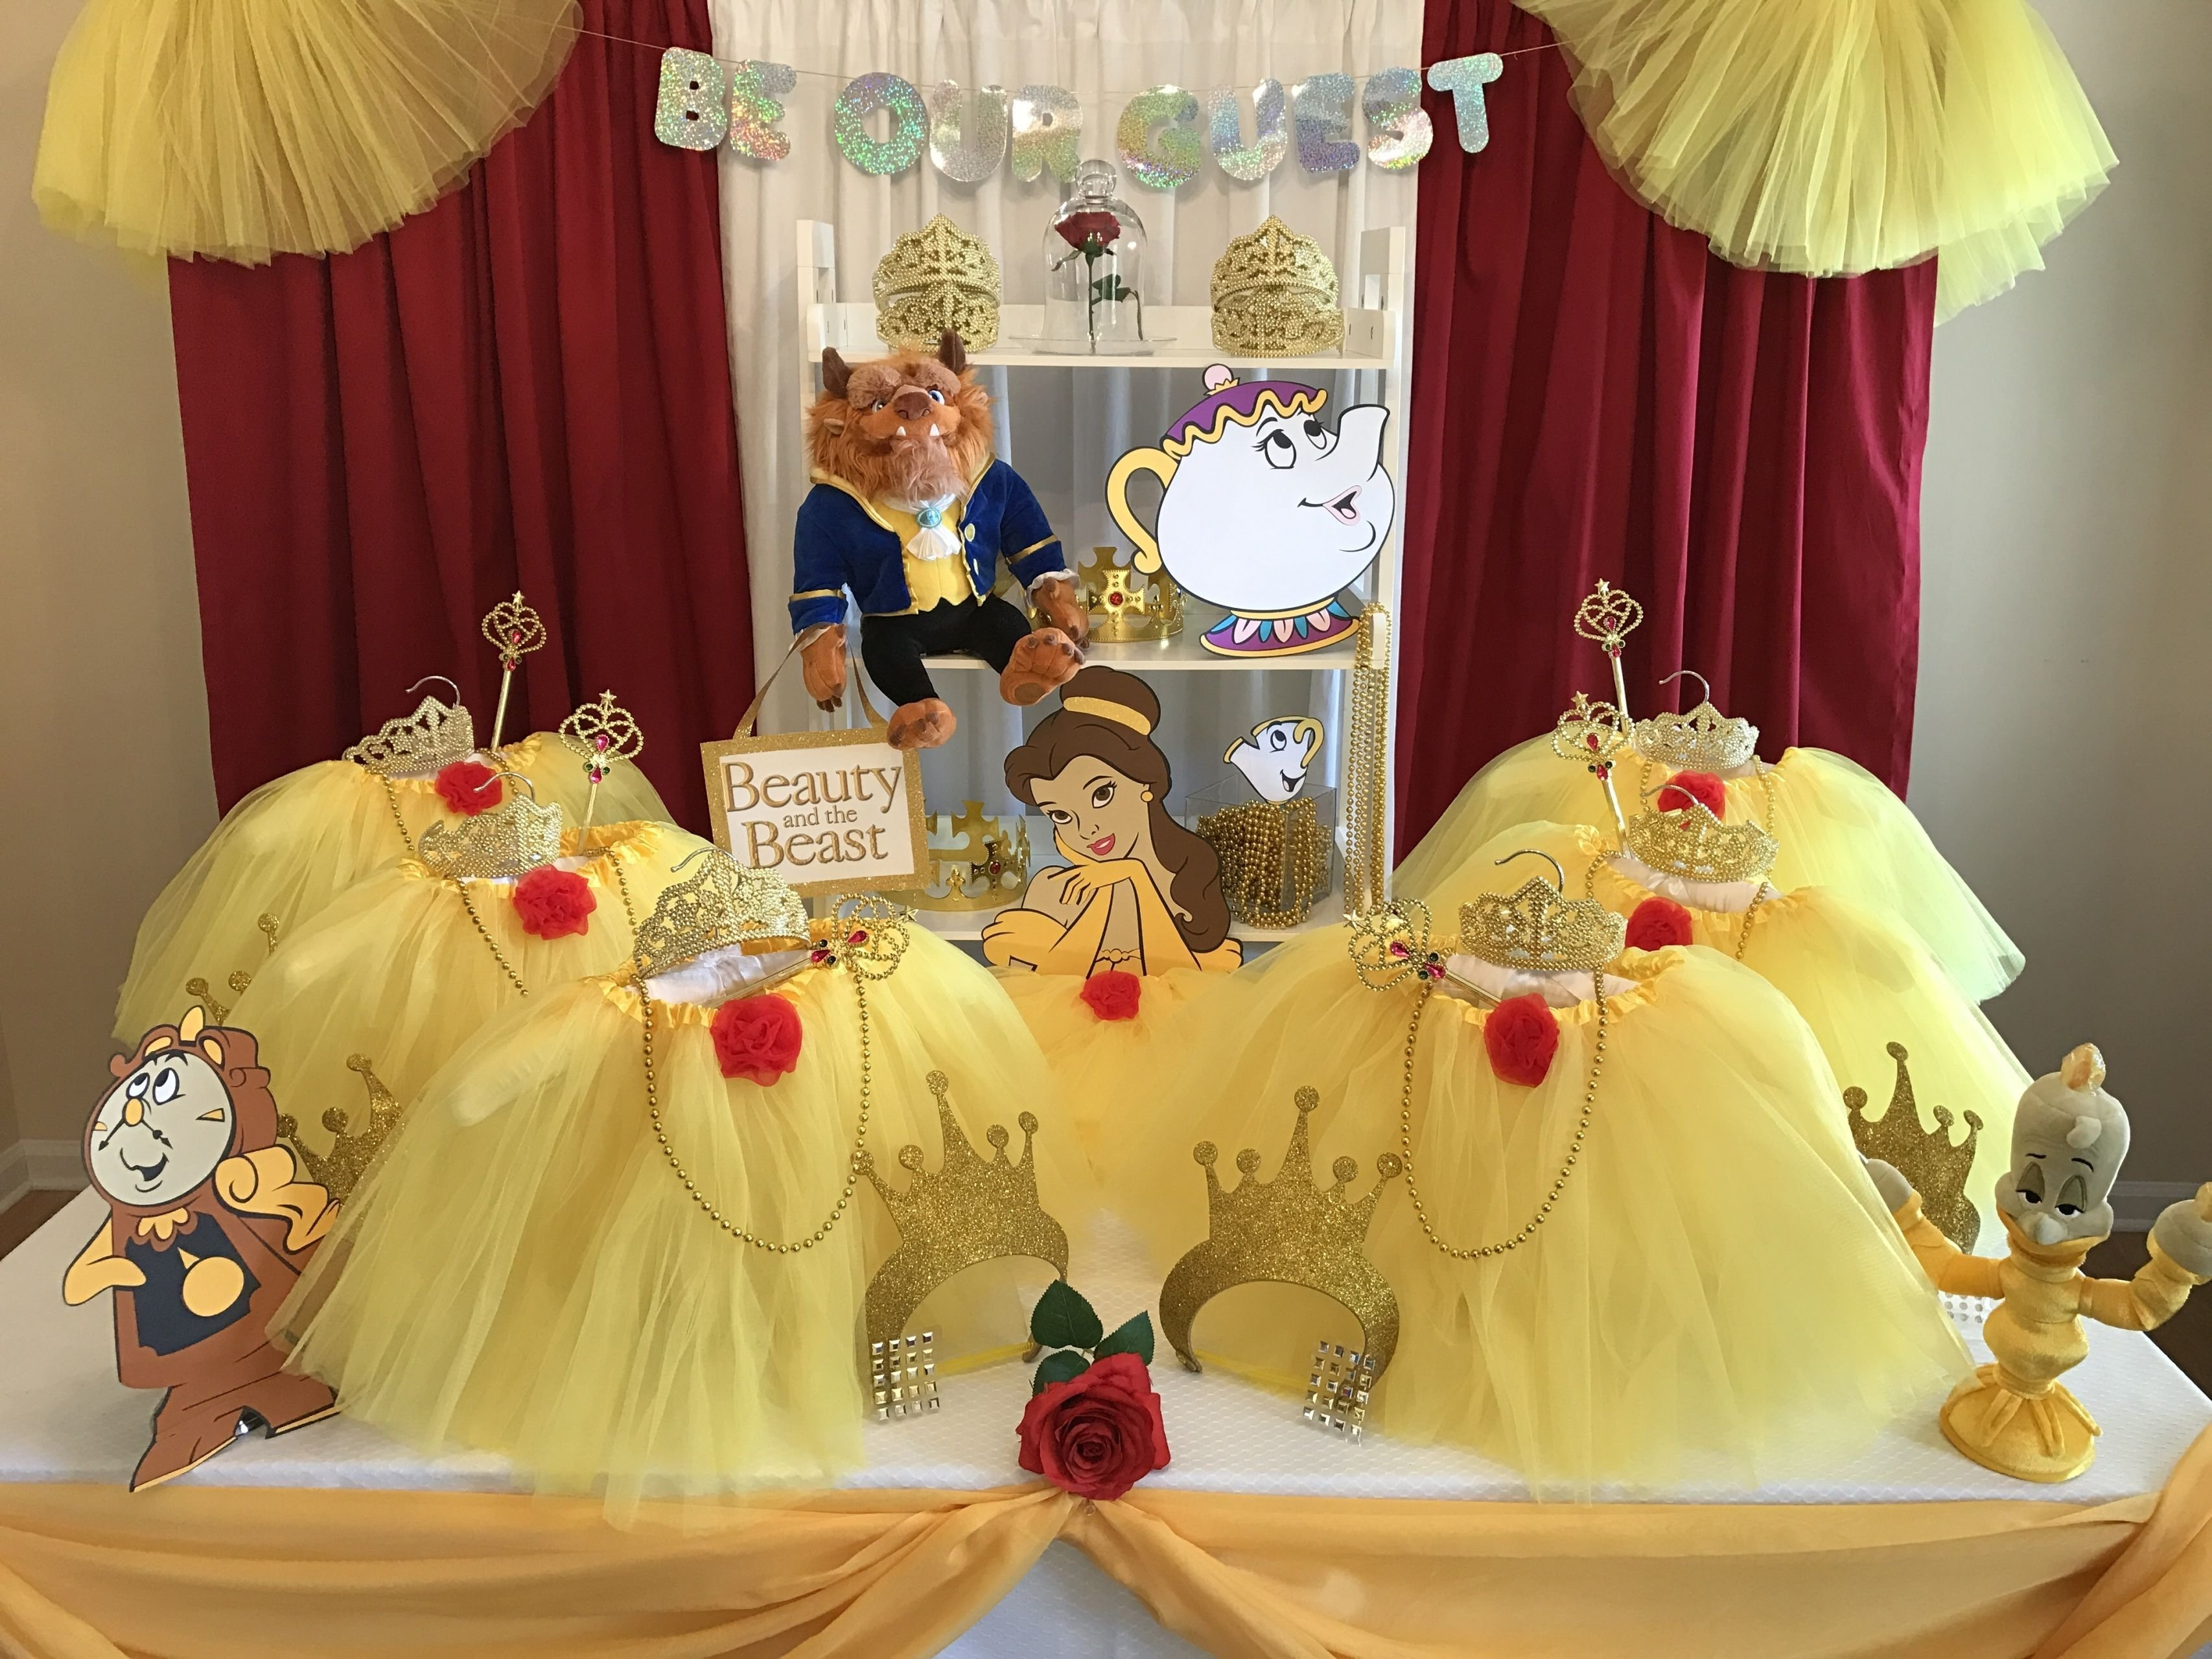 beauty and the beast party ideas | event ideas, princess theme party